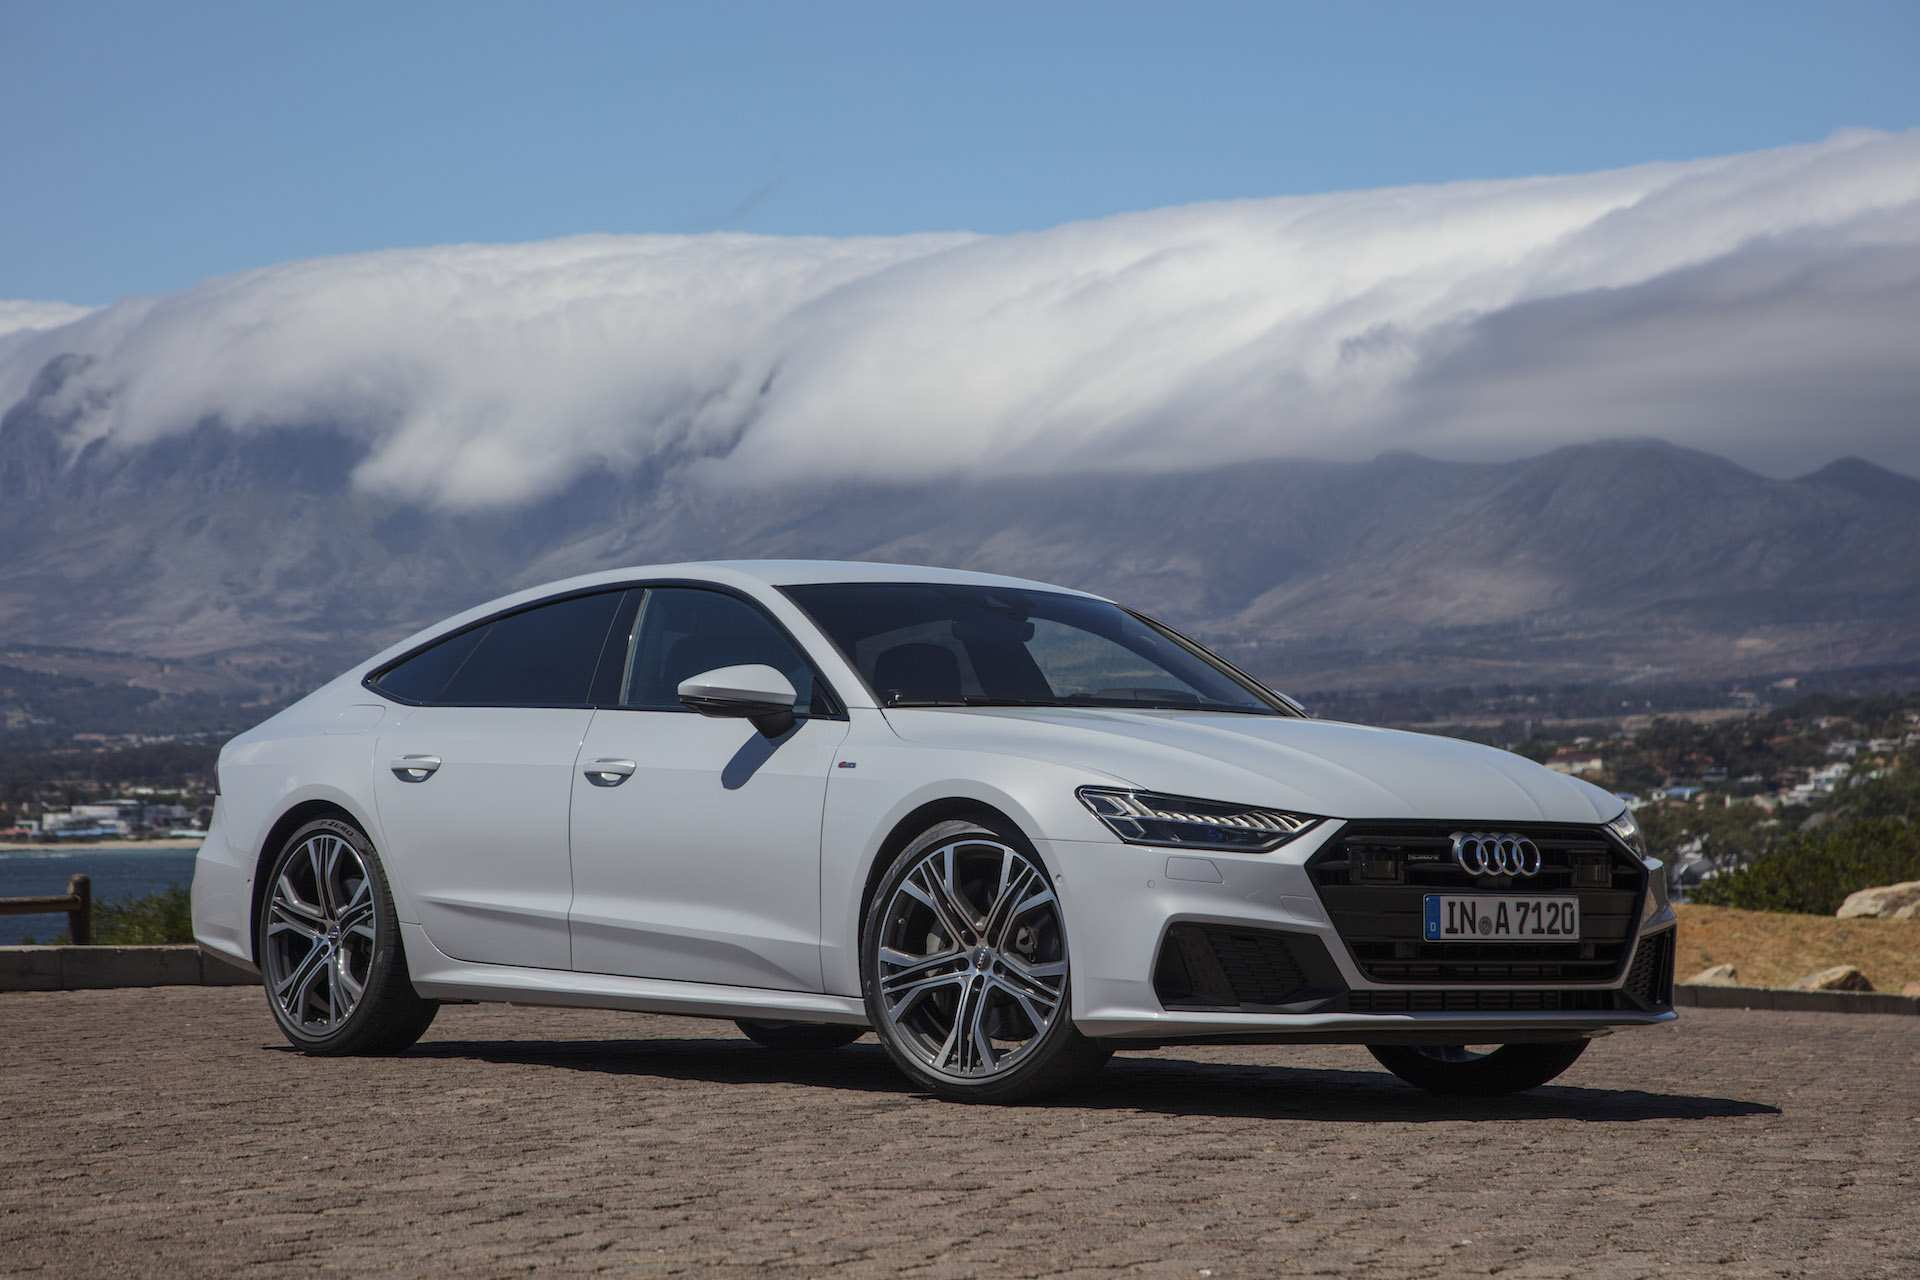 51 Best Review 2019 Audi A7 Review Concept by 2019 Audi A7 Review